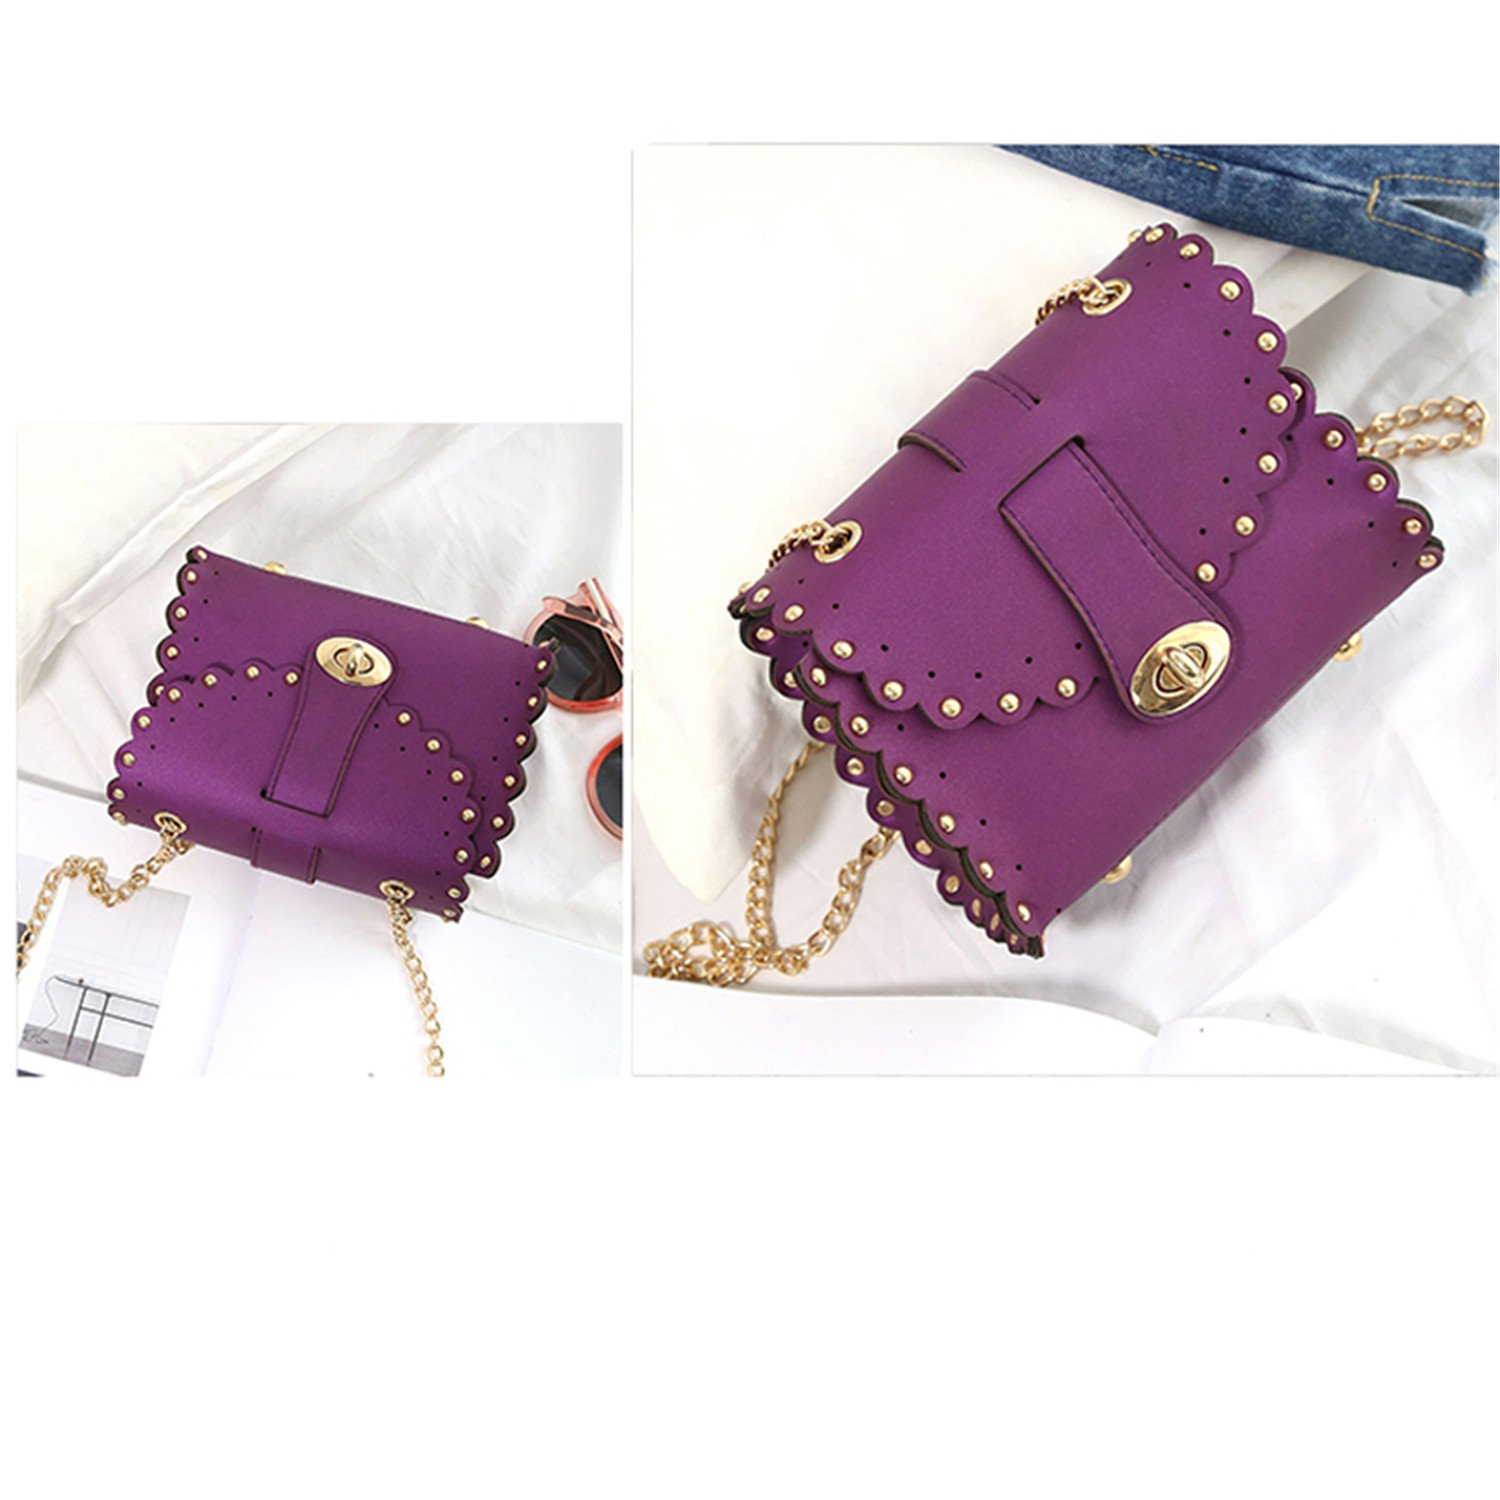 SHILINWEI Women Rivet Vintage Leather Wallets Embossed Wallet Clutch Handbags Shoulder Messenger Bag: Handbags: Amazon.com